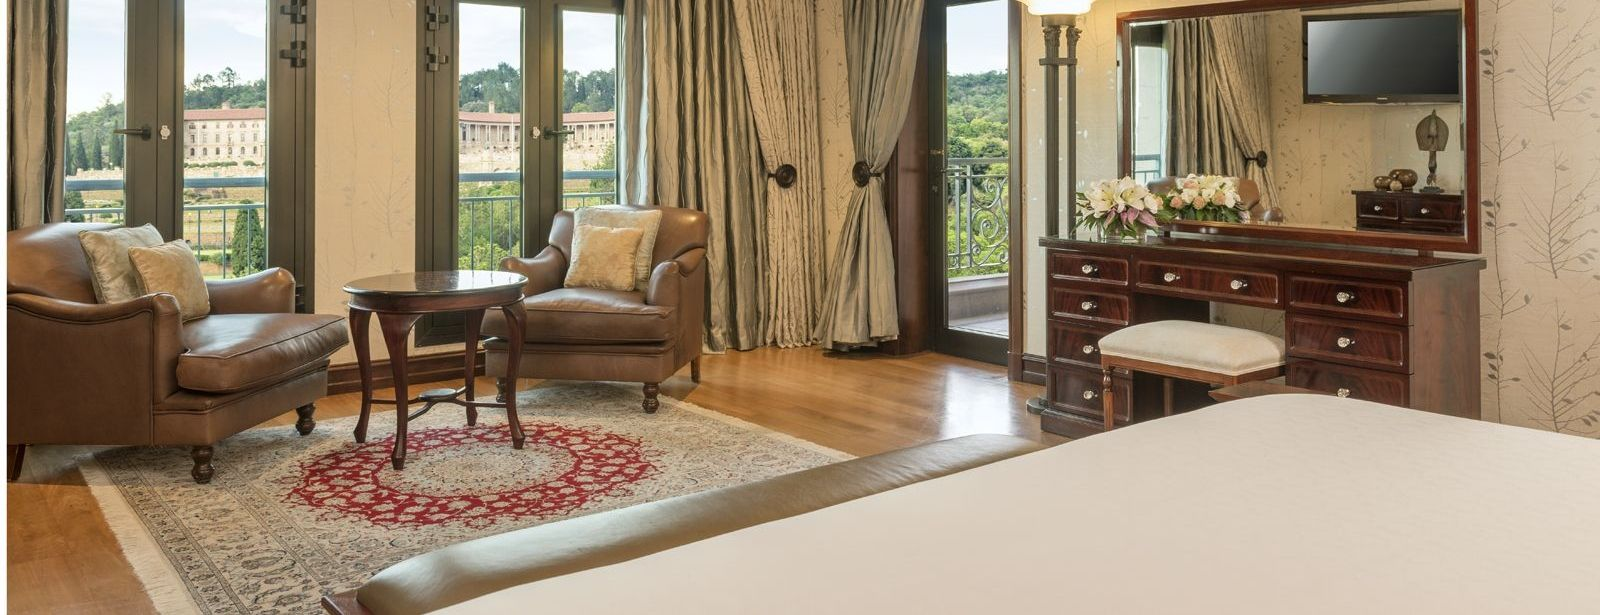 Presidential Suite Bedroom Interior